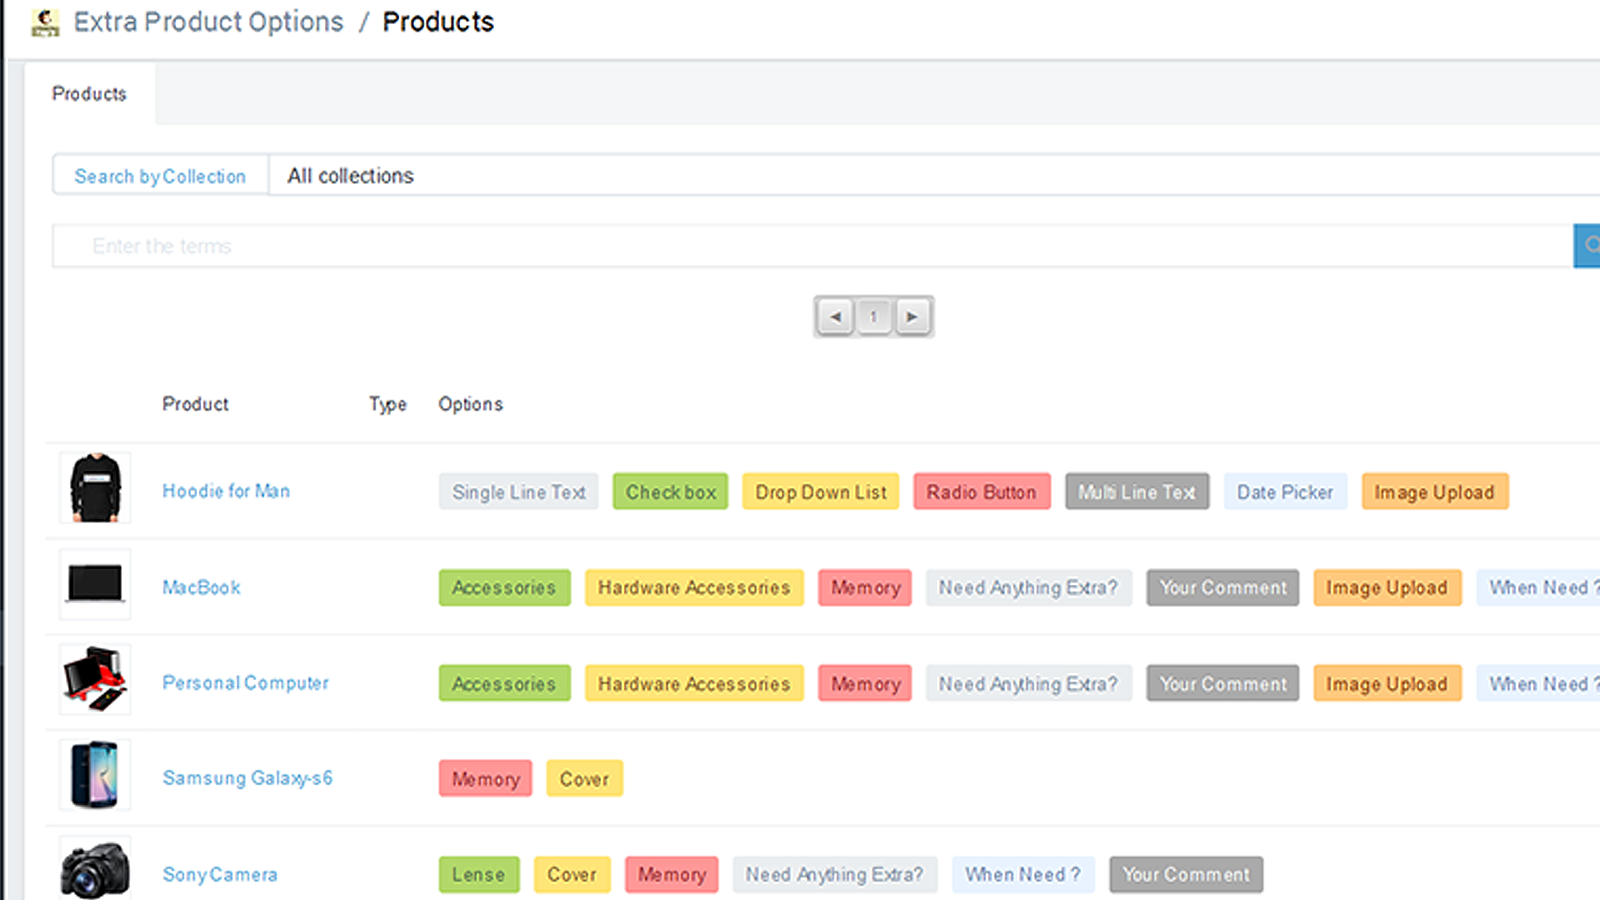 List of options per product in backend